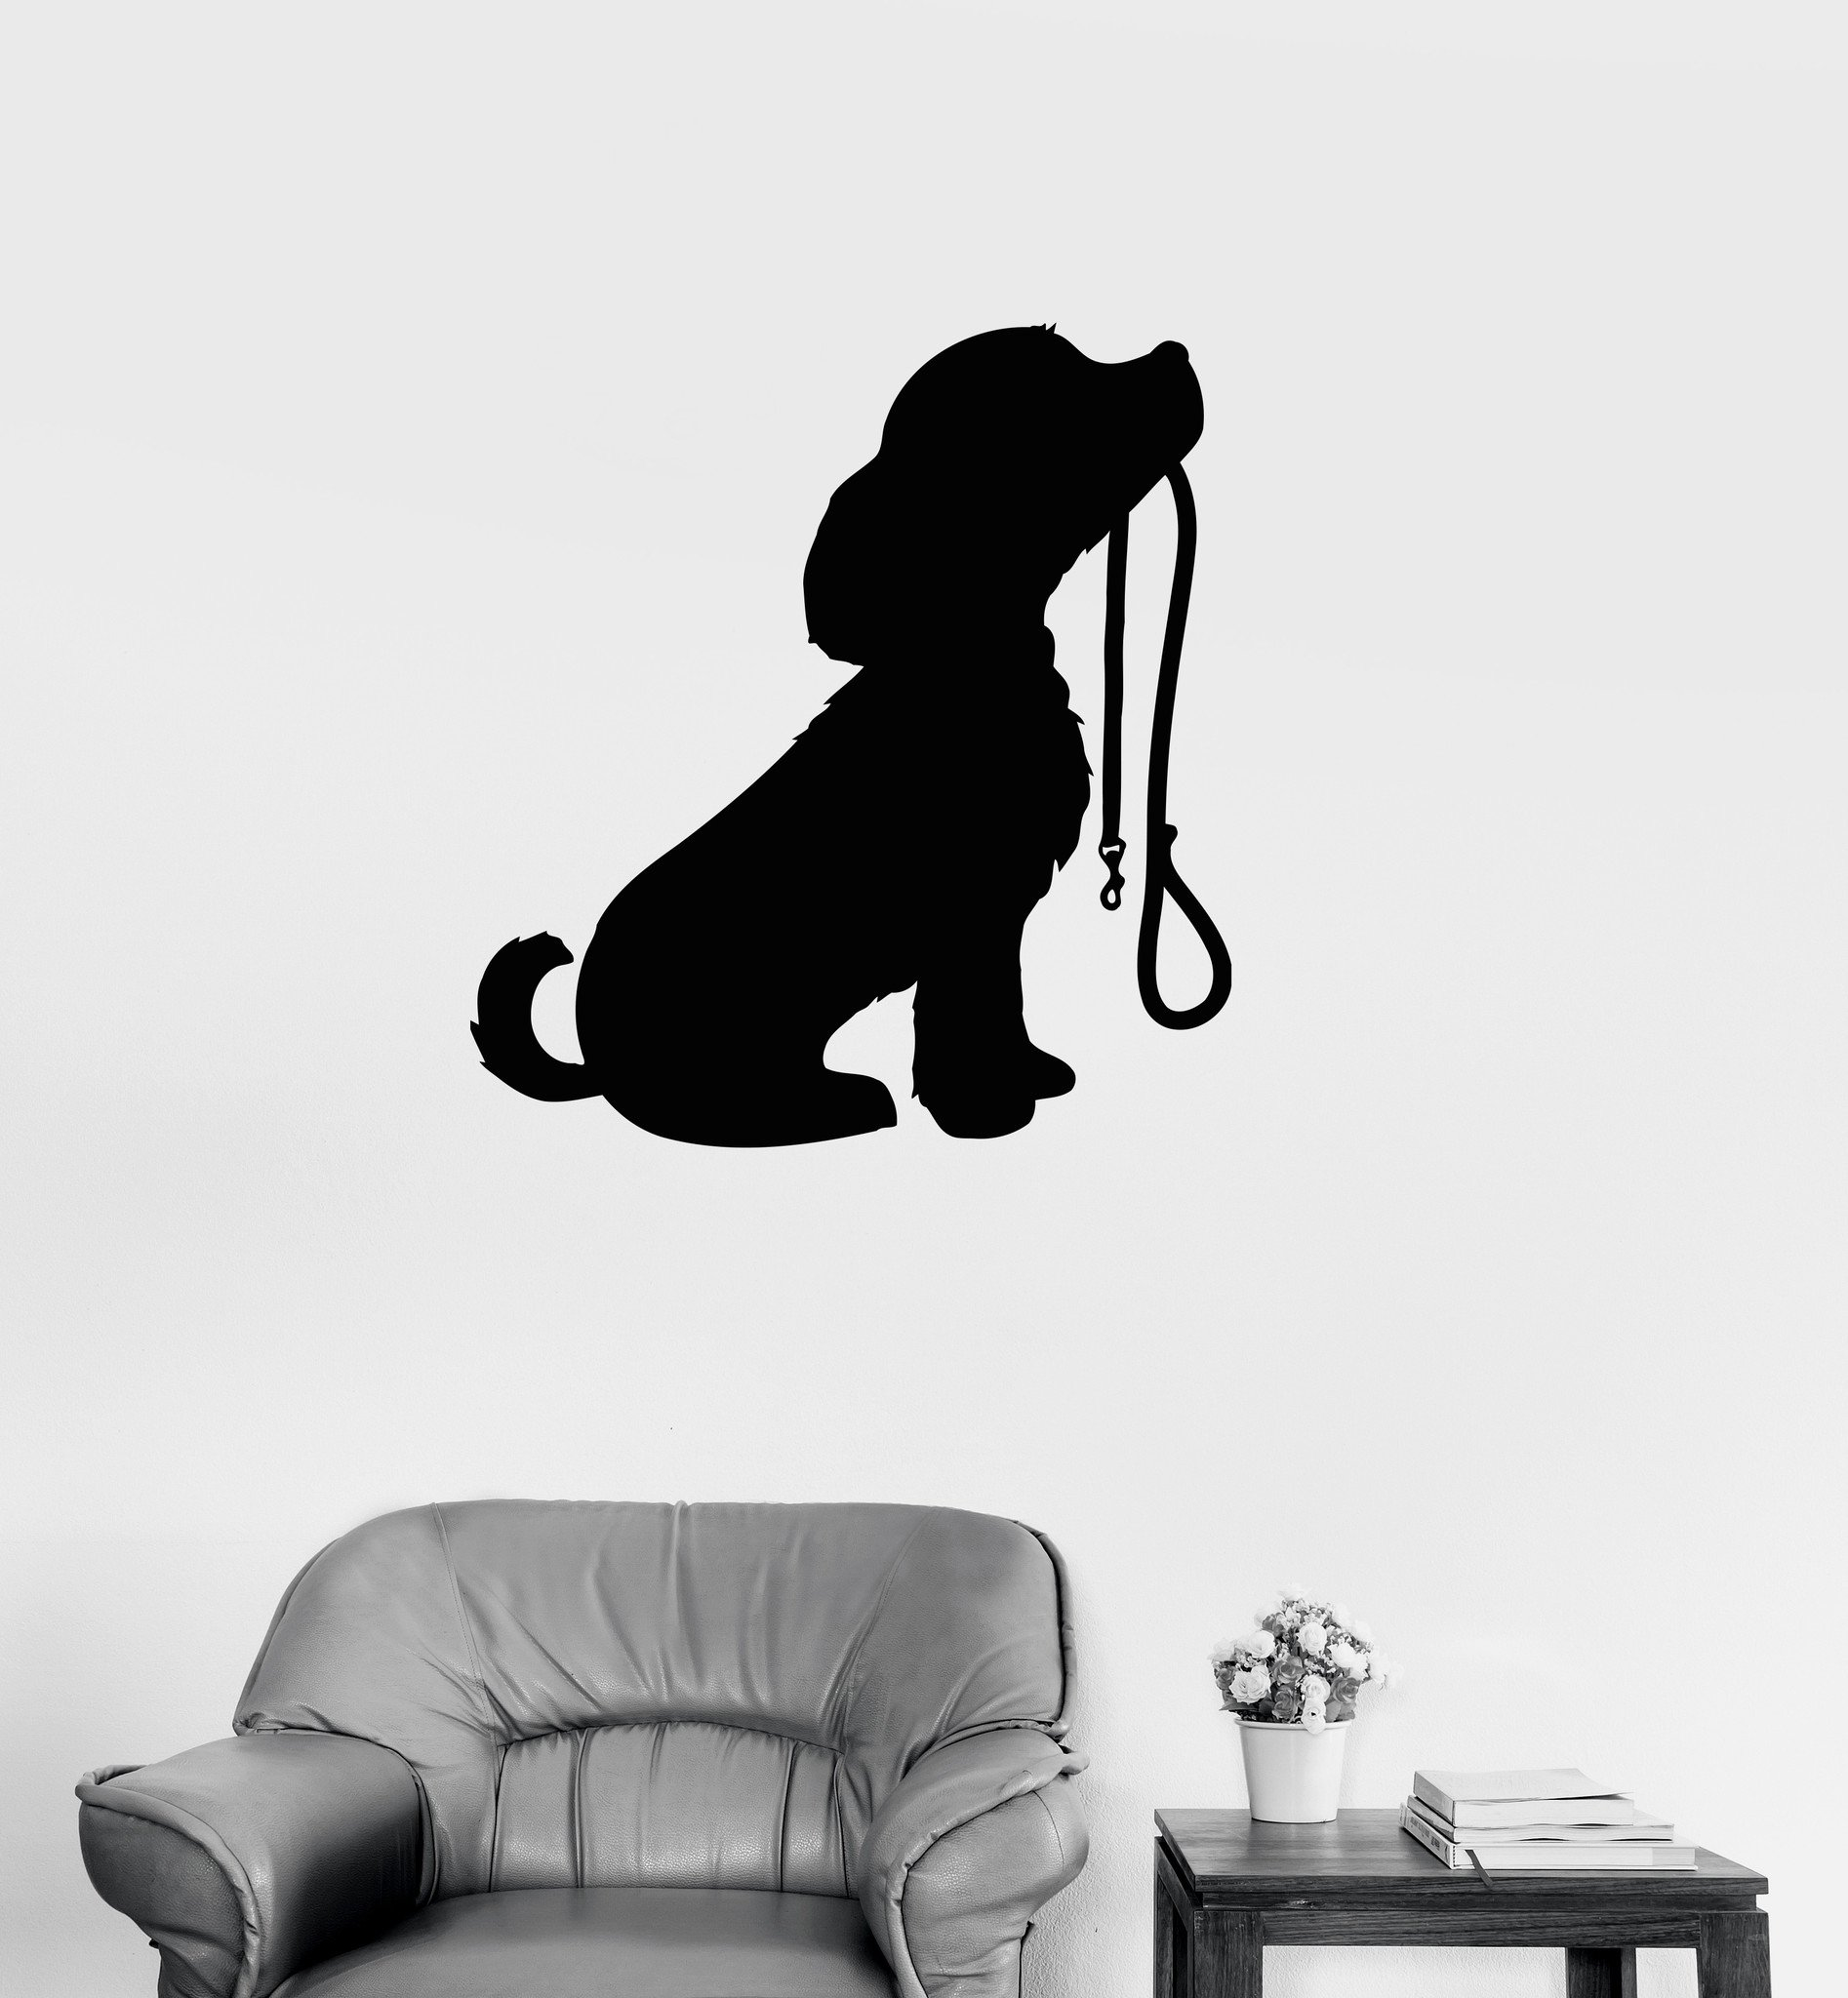 Large Vinyl Decal Cute Puppy Dog Animal Kids Room Baby Wall Sticker Mural (ig101) Brown